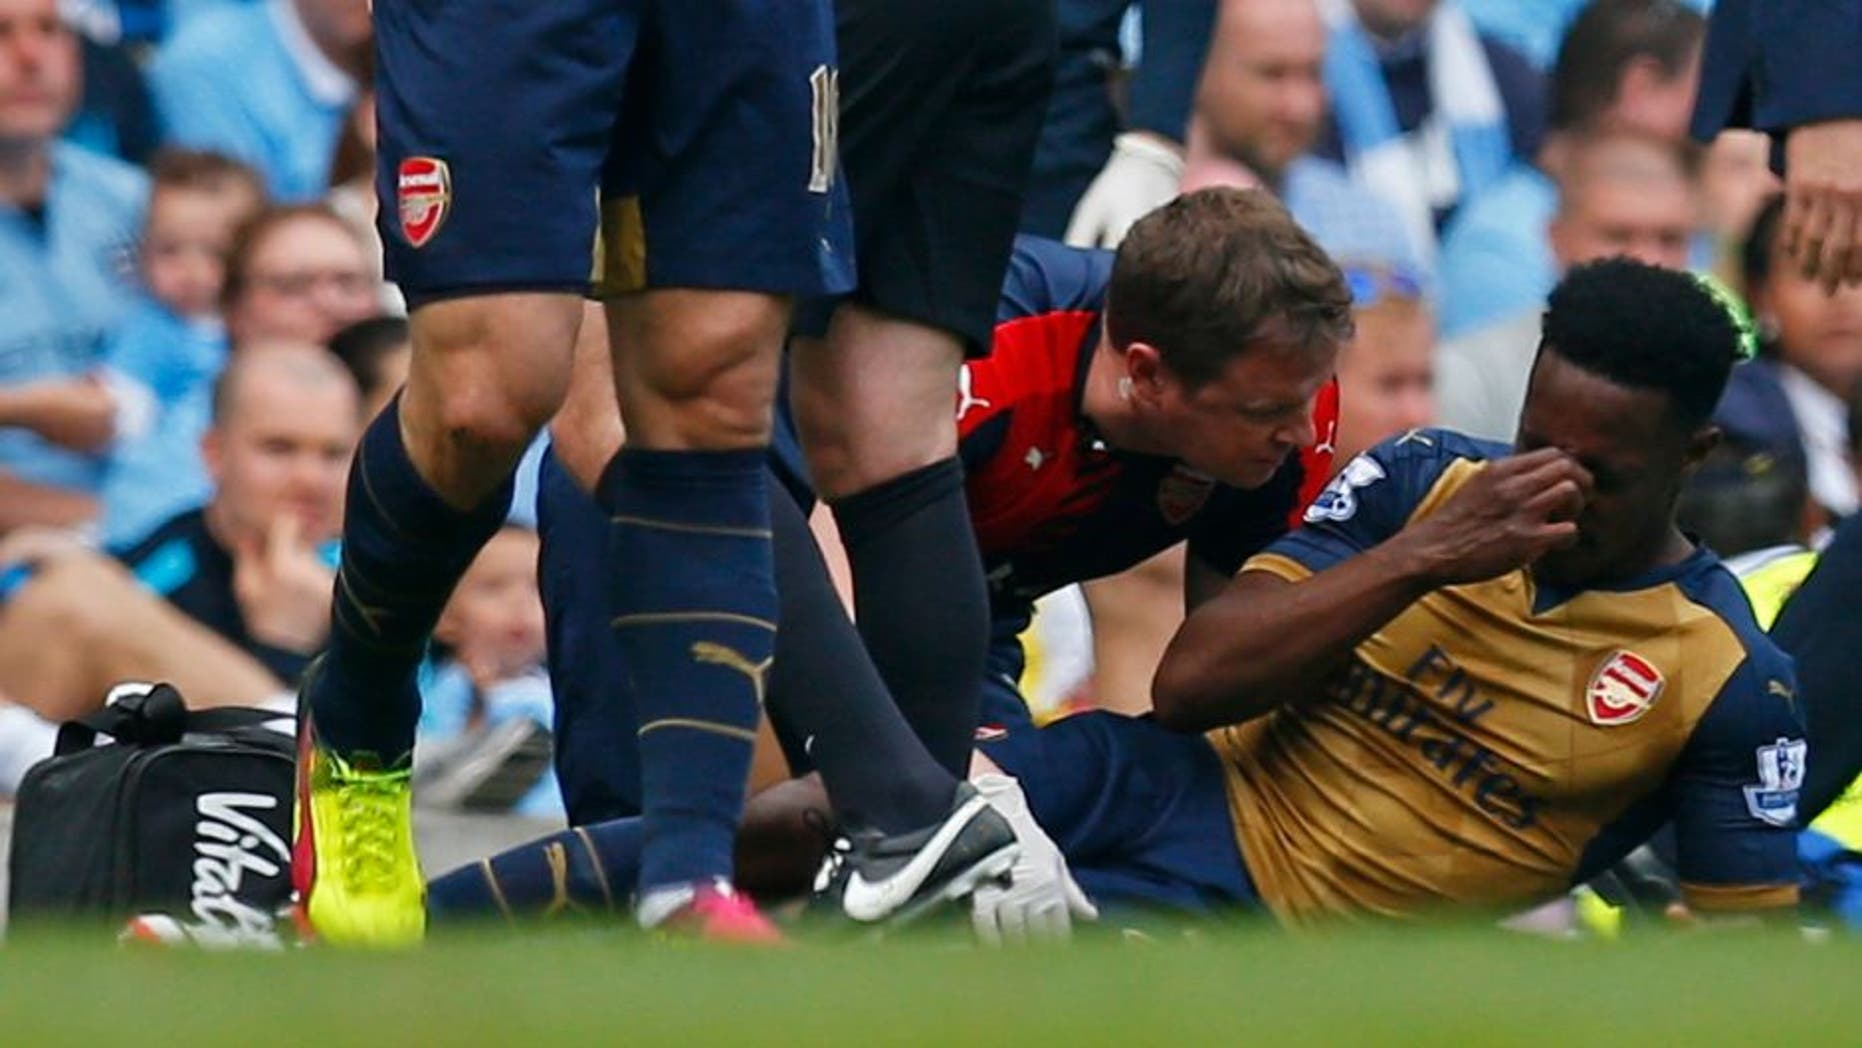 """Britain Soccer Football - Manchester City v Arsenal - Barclays Premier League - Etihad Stadium - 8/5/16 Arsenal's Danny Welbeck receives treatment after sustaining an injury before being substituted Action Images via Reuters / Jason Cairnduff Livepic EDITORIAL USE ONLY. No use with unauthorized audio, video, data, fixture lists, club/league logos or """"live"""" services. Online in-match use limited to 45 images, no video emulation. No use in betting, games or single club/league/player publications. Please contact your account representative for further details."""